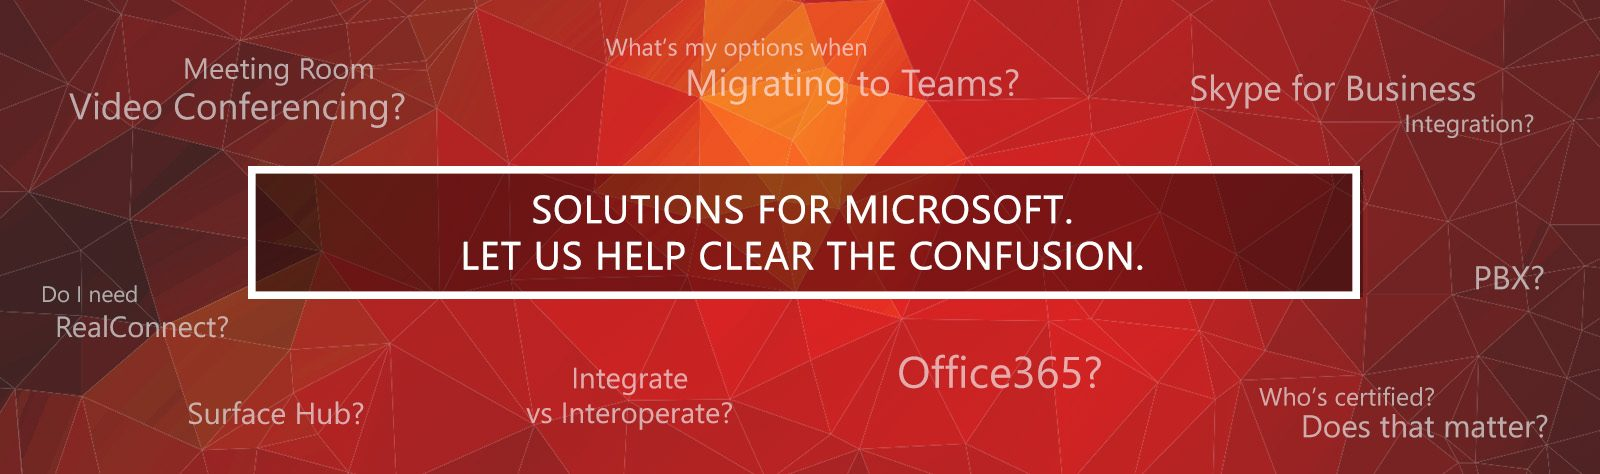 Microsoft Skype for Business and Teams Video Conferencing Solutions